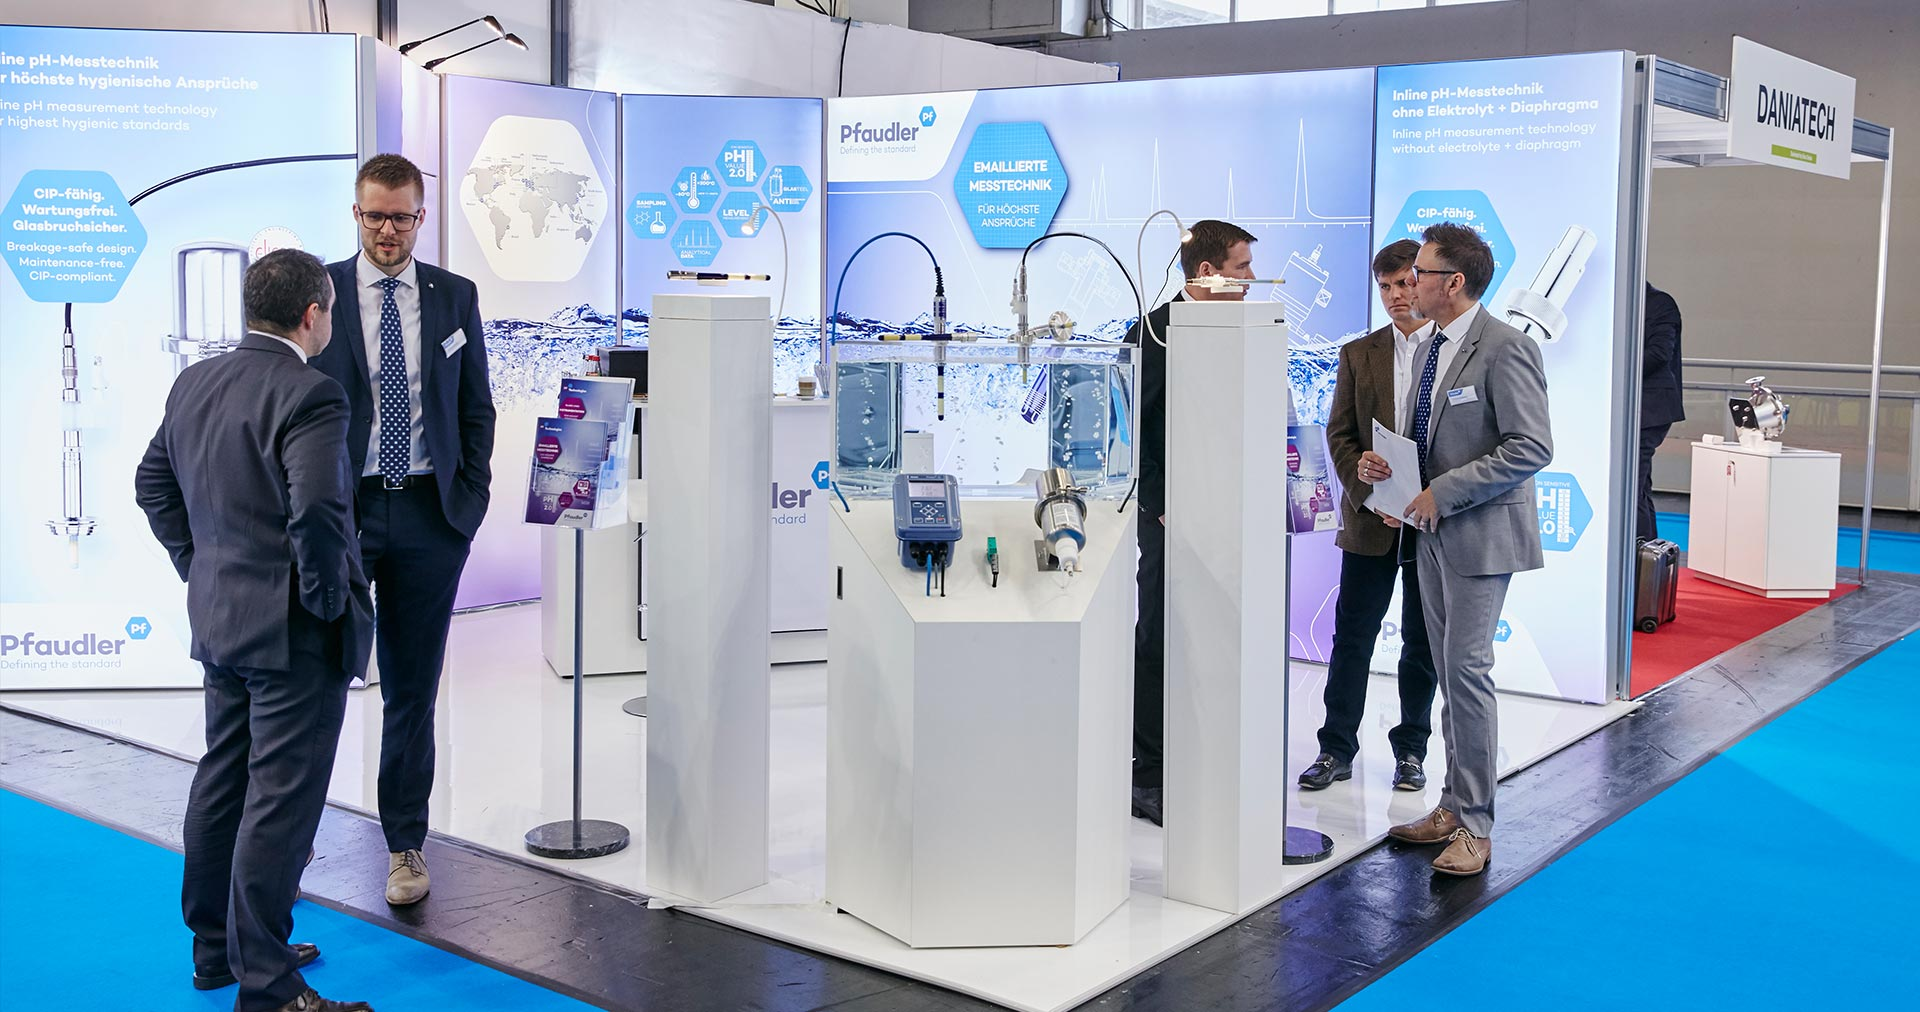 Expo Exhibition Stands Jobs : Pfaudler at anuga foodtec 2018 by expo display service